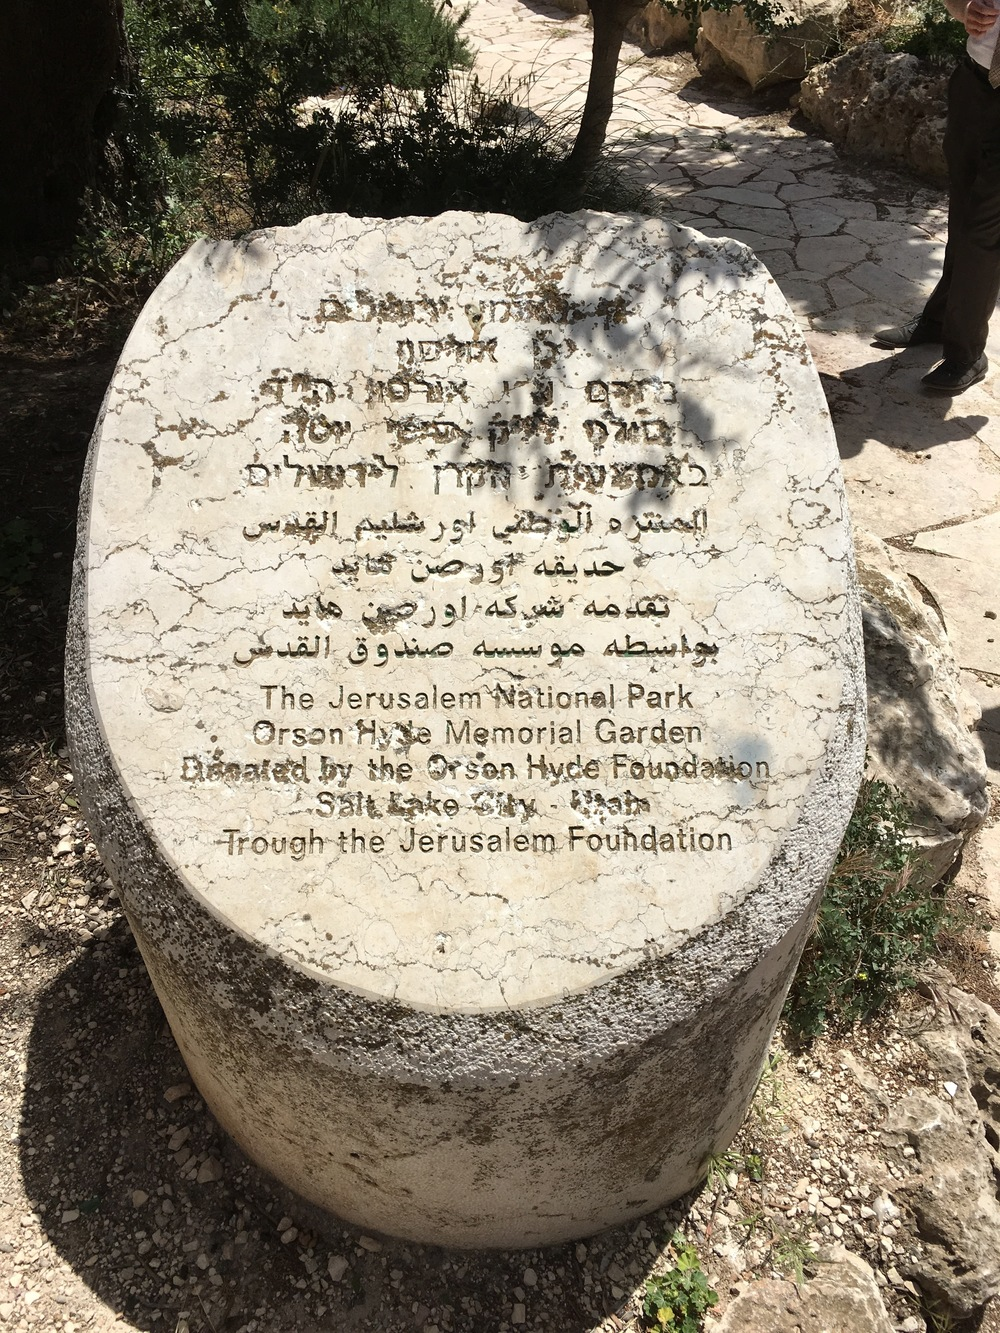 From the Orson Hyde Memorial Garden by BYU Jerusalem